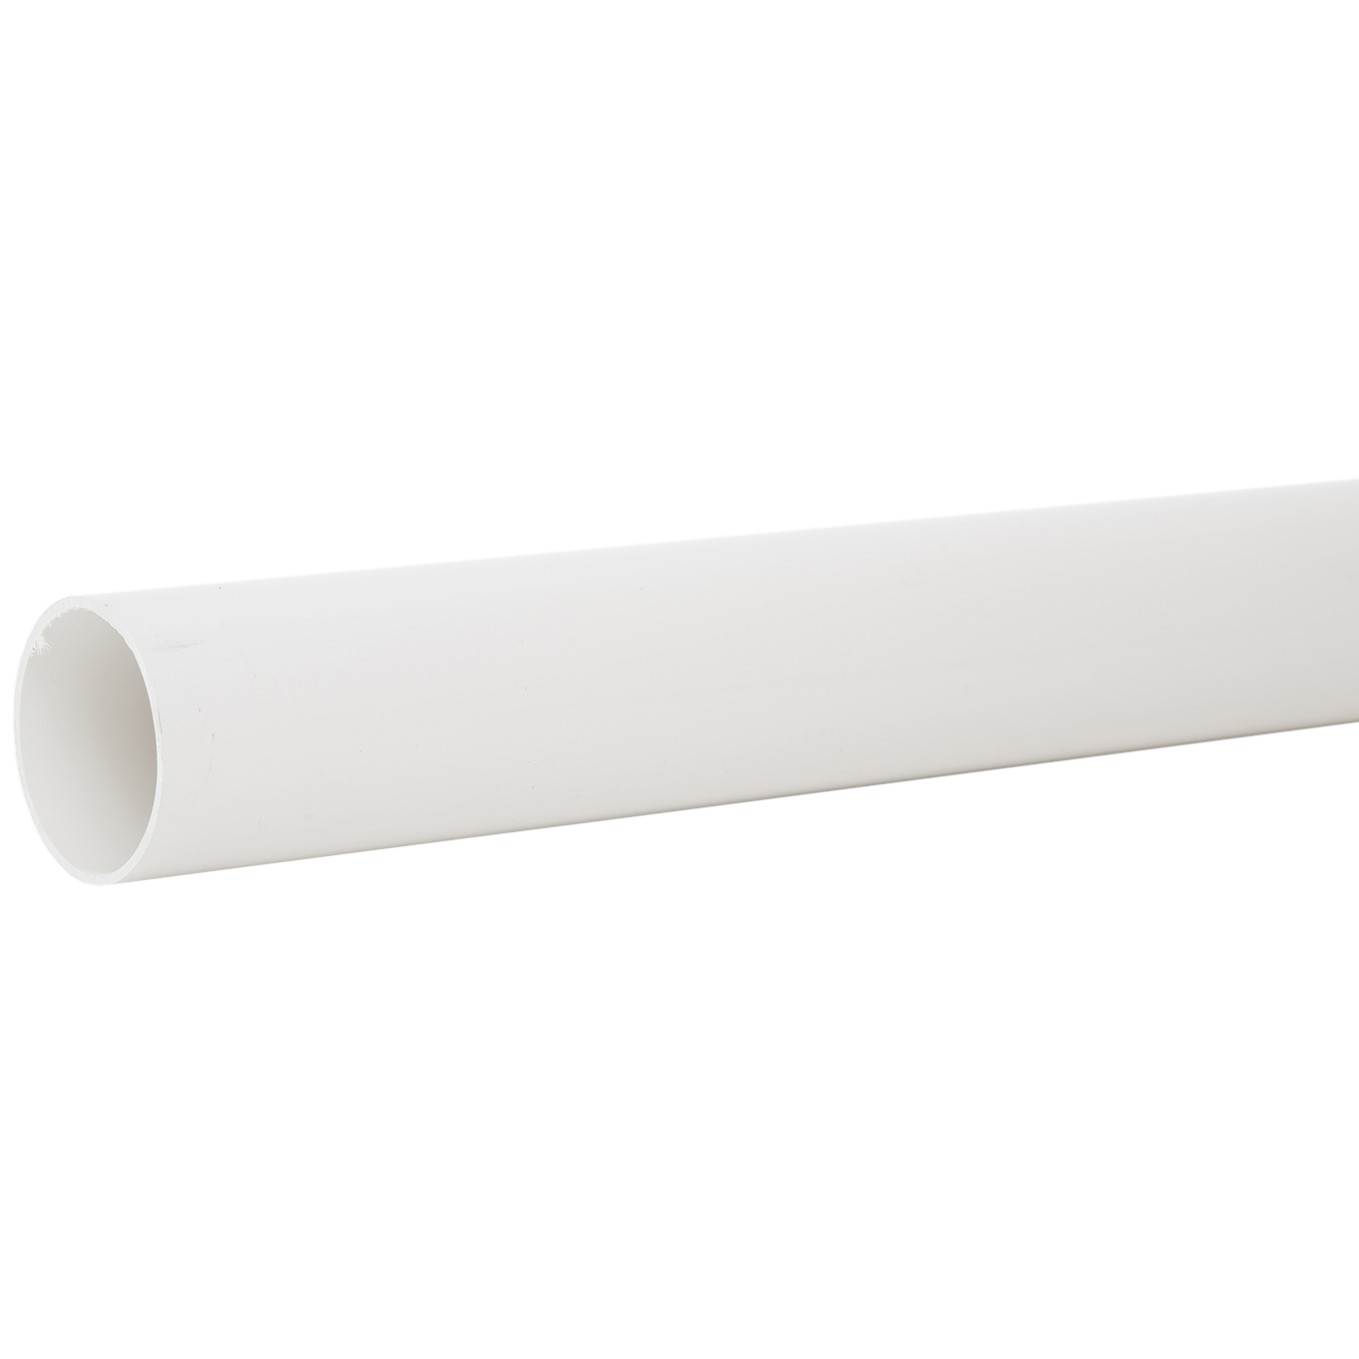 Polypipe 50mm Mini Round Down Pipe - White, 2 metre